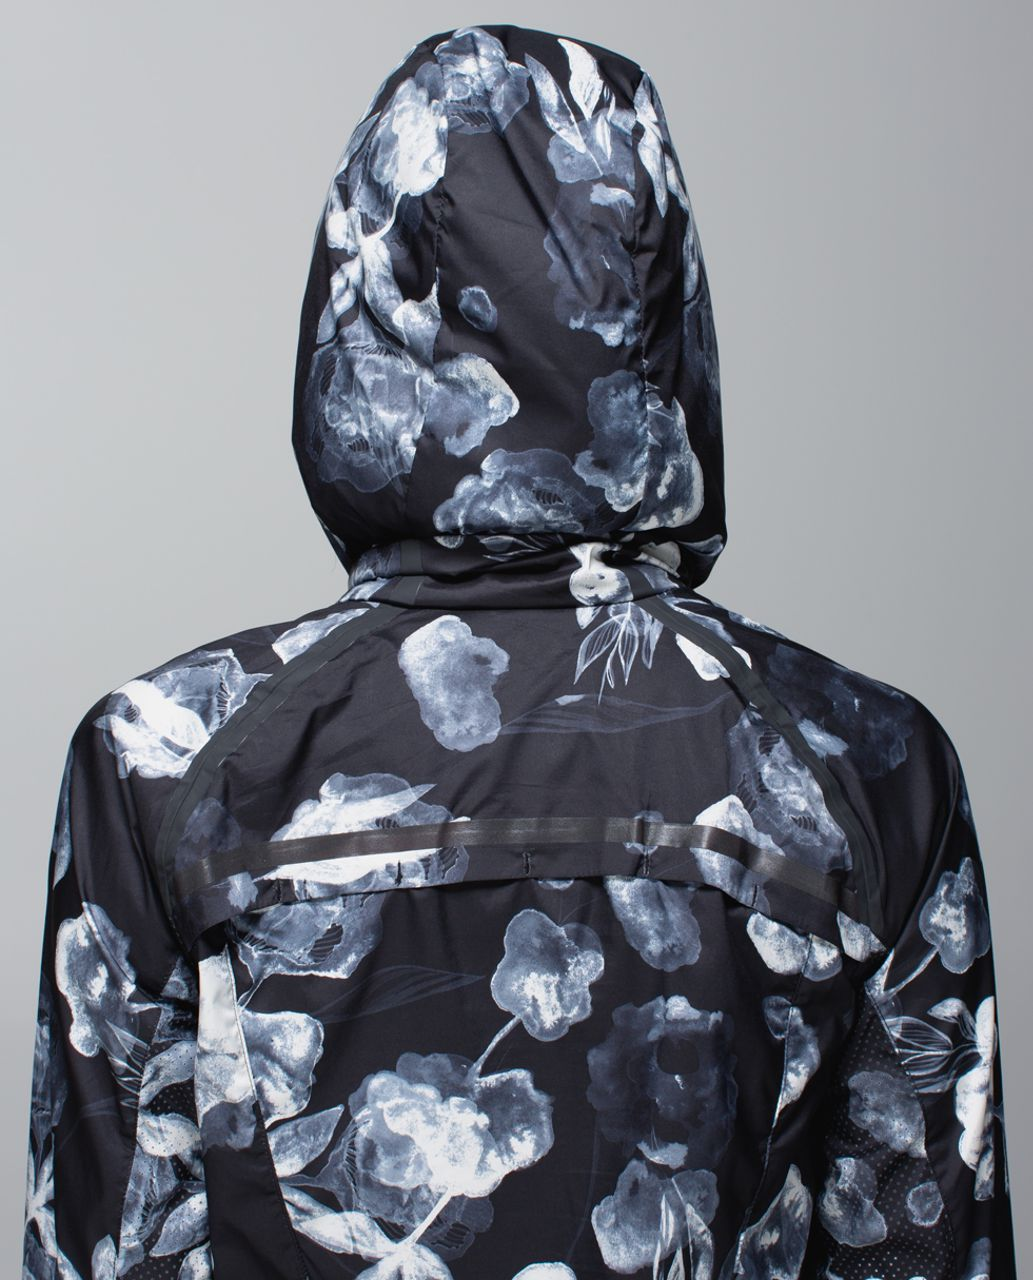 Lululemon Miss Misty Pullover - Inky Floral Black Ghost